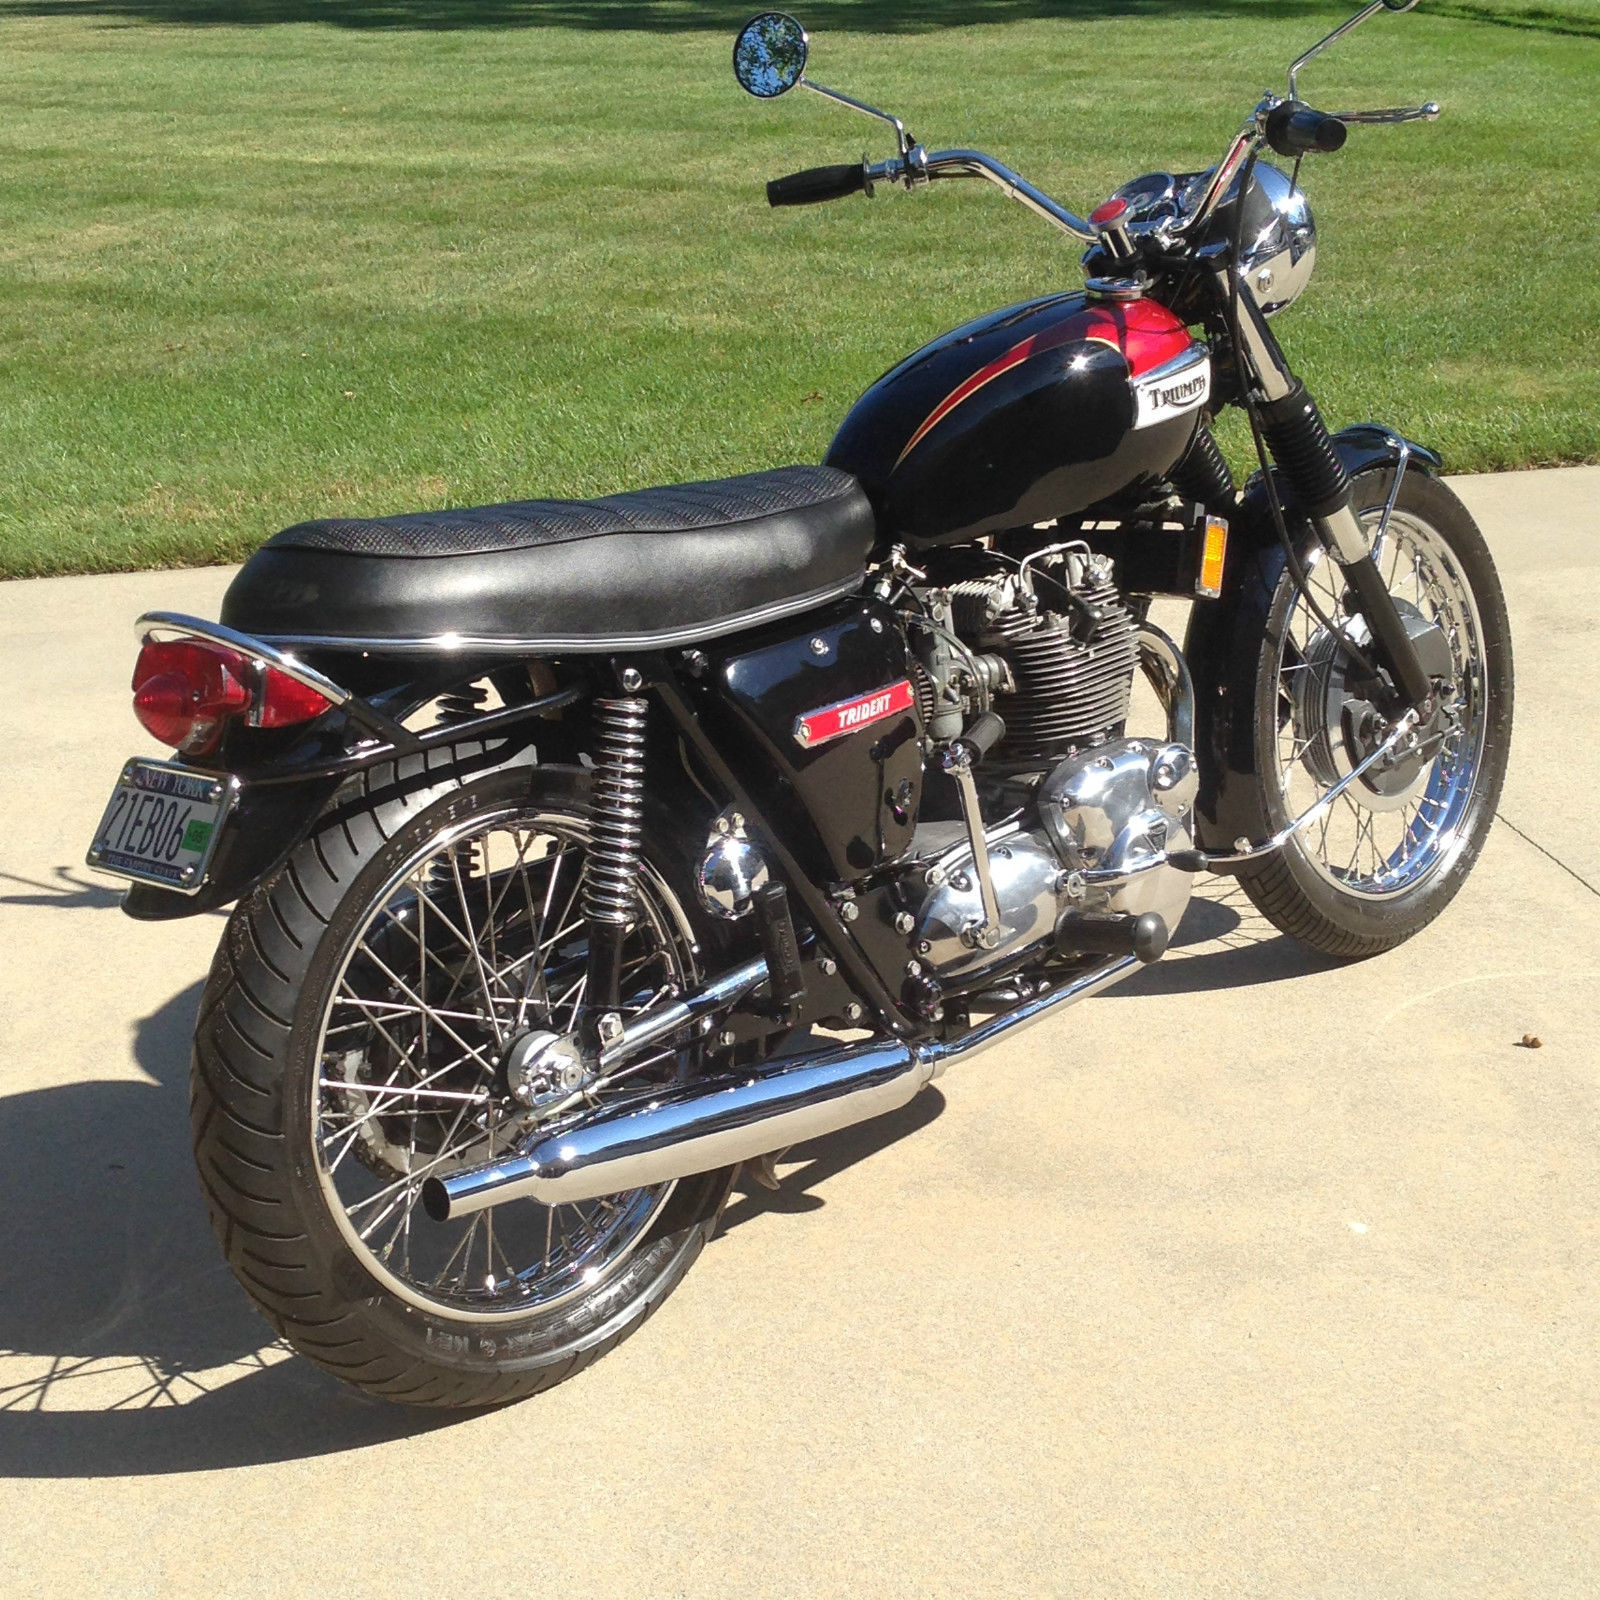 Once the Ogle styling was done away with and replaced with traditional styling the Trident became a desirable looking bike. (Picture courtesy eBay).